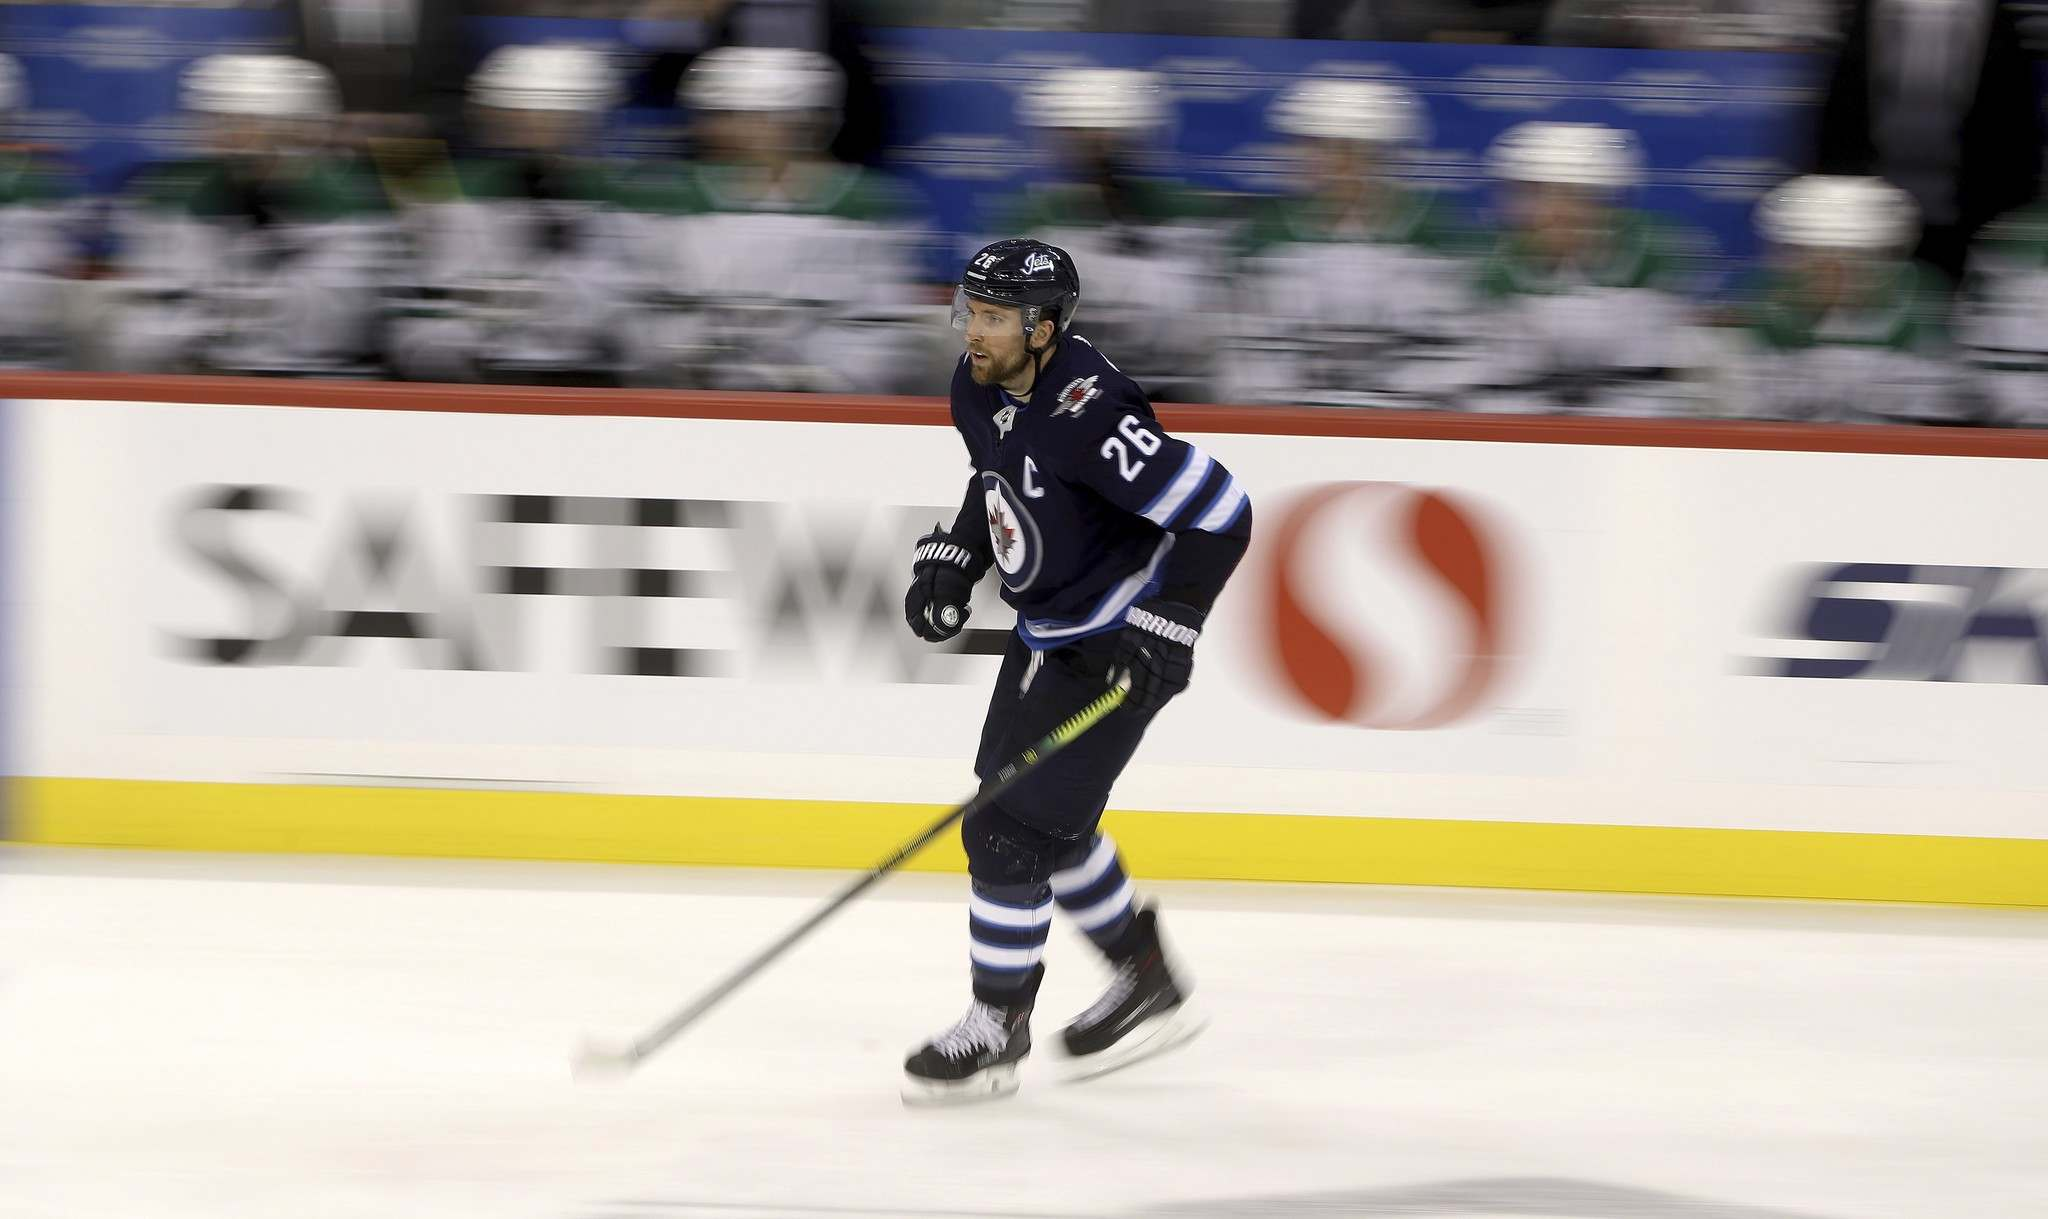 Blake Wheeler has yet to score on the power play but has 19 assists. (Trevor Hagan / The Canadian Press)</p>